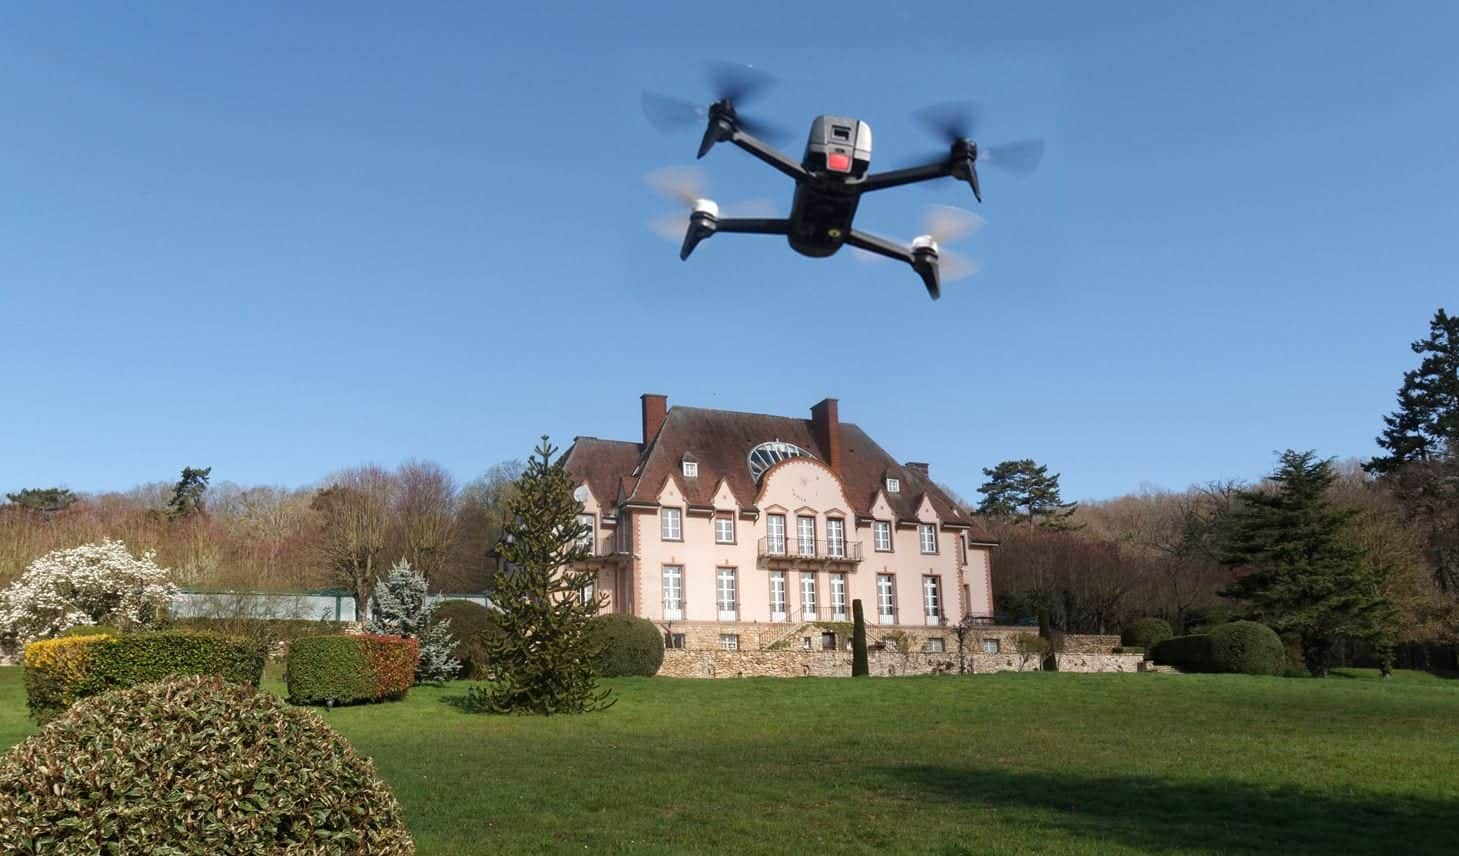 The Importance Of Drones And Photogrammetry For The